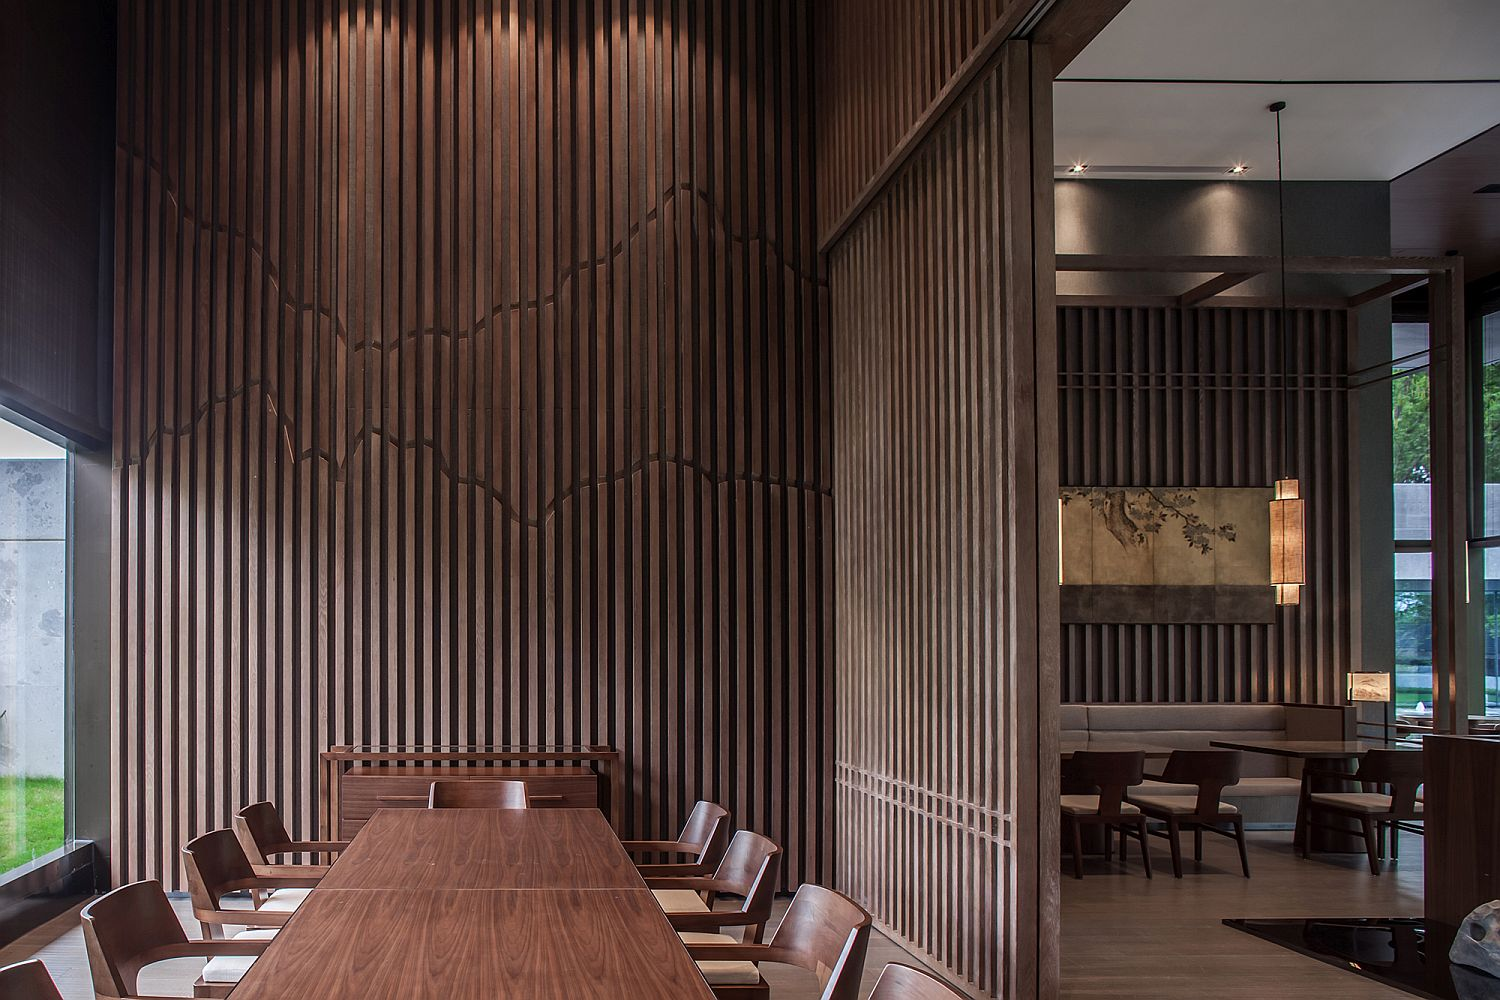 Vertical-wooden-slats-bring-the-image-of-forest-indoors